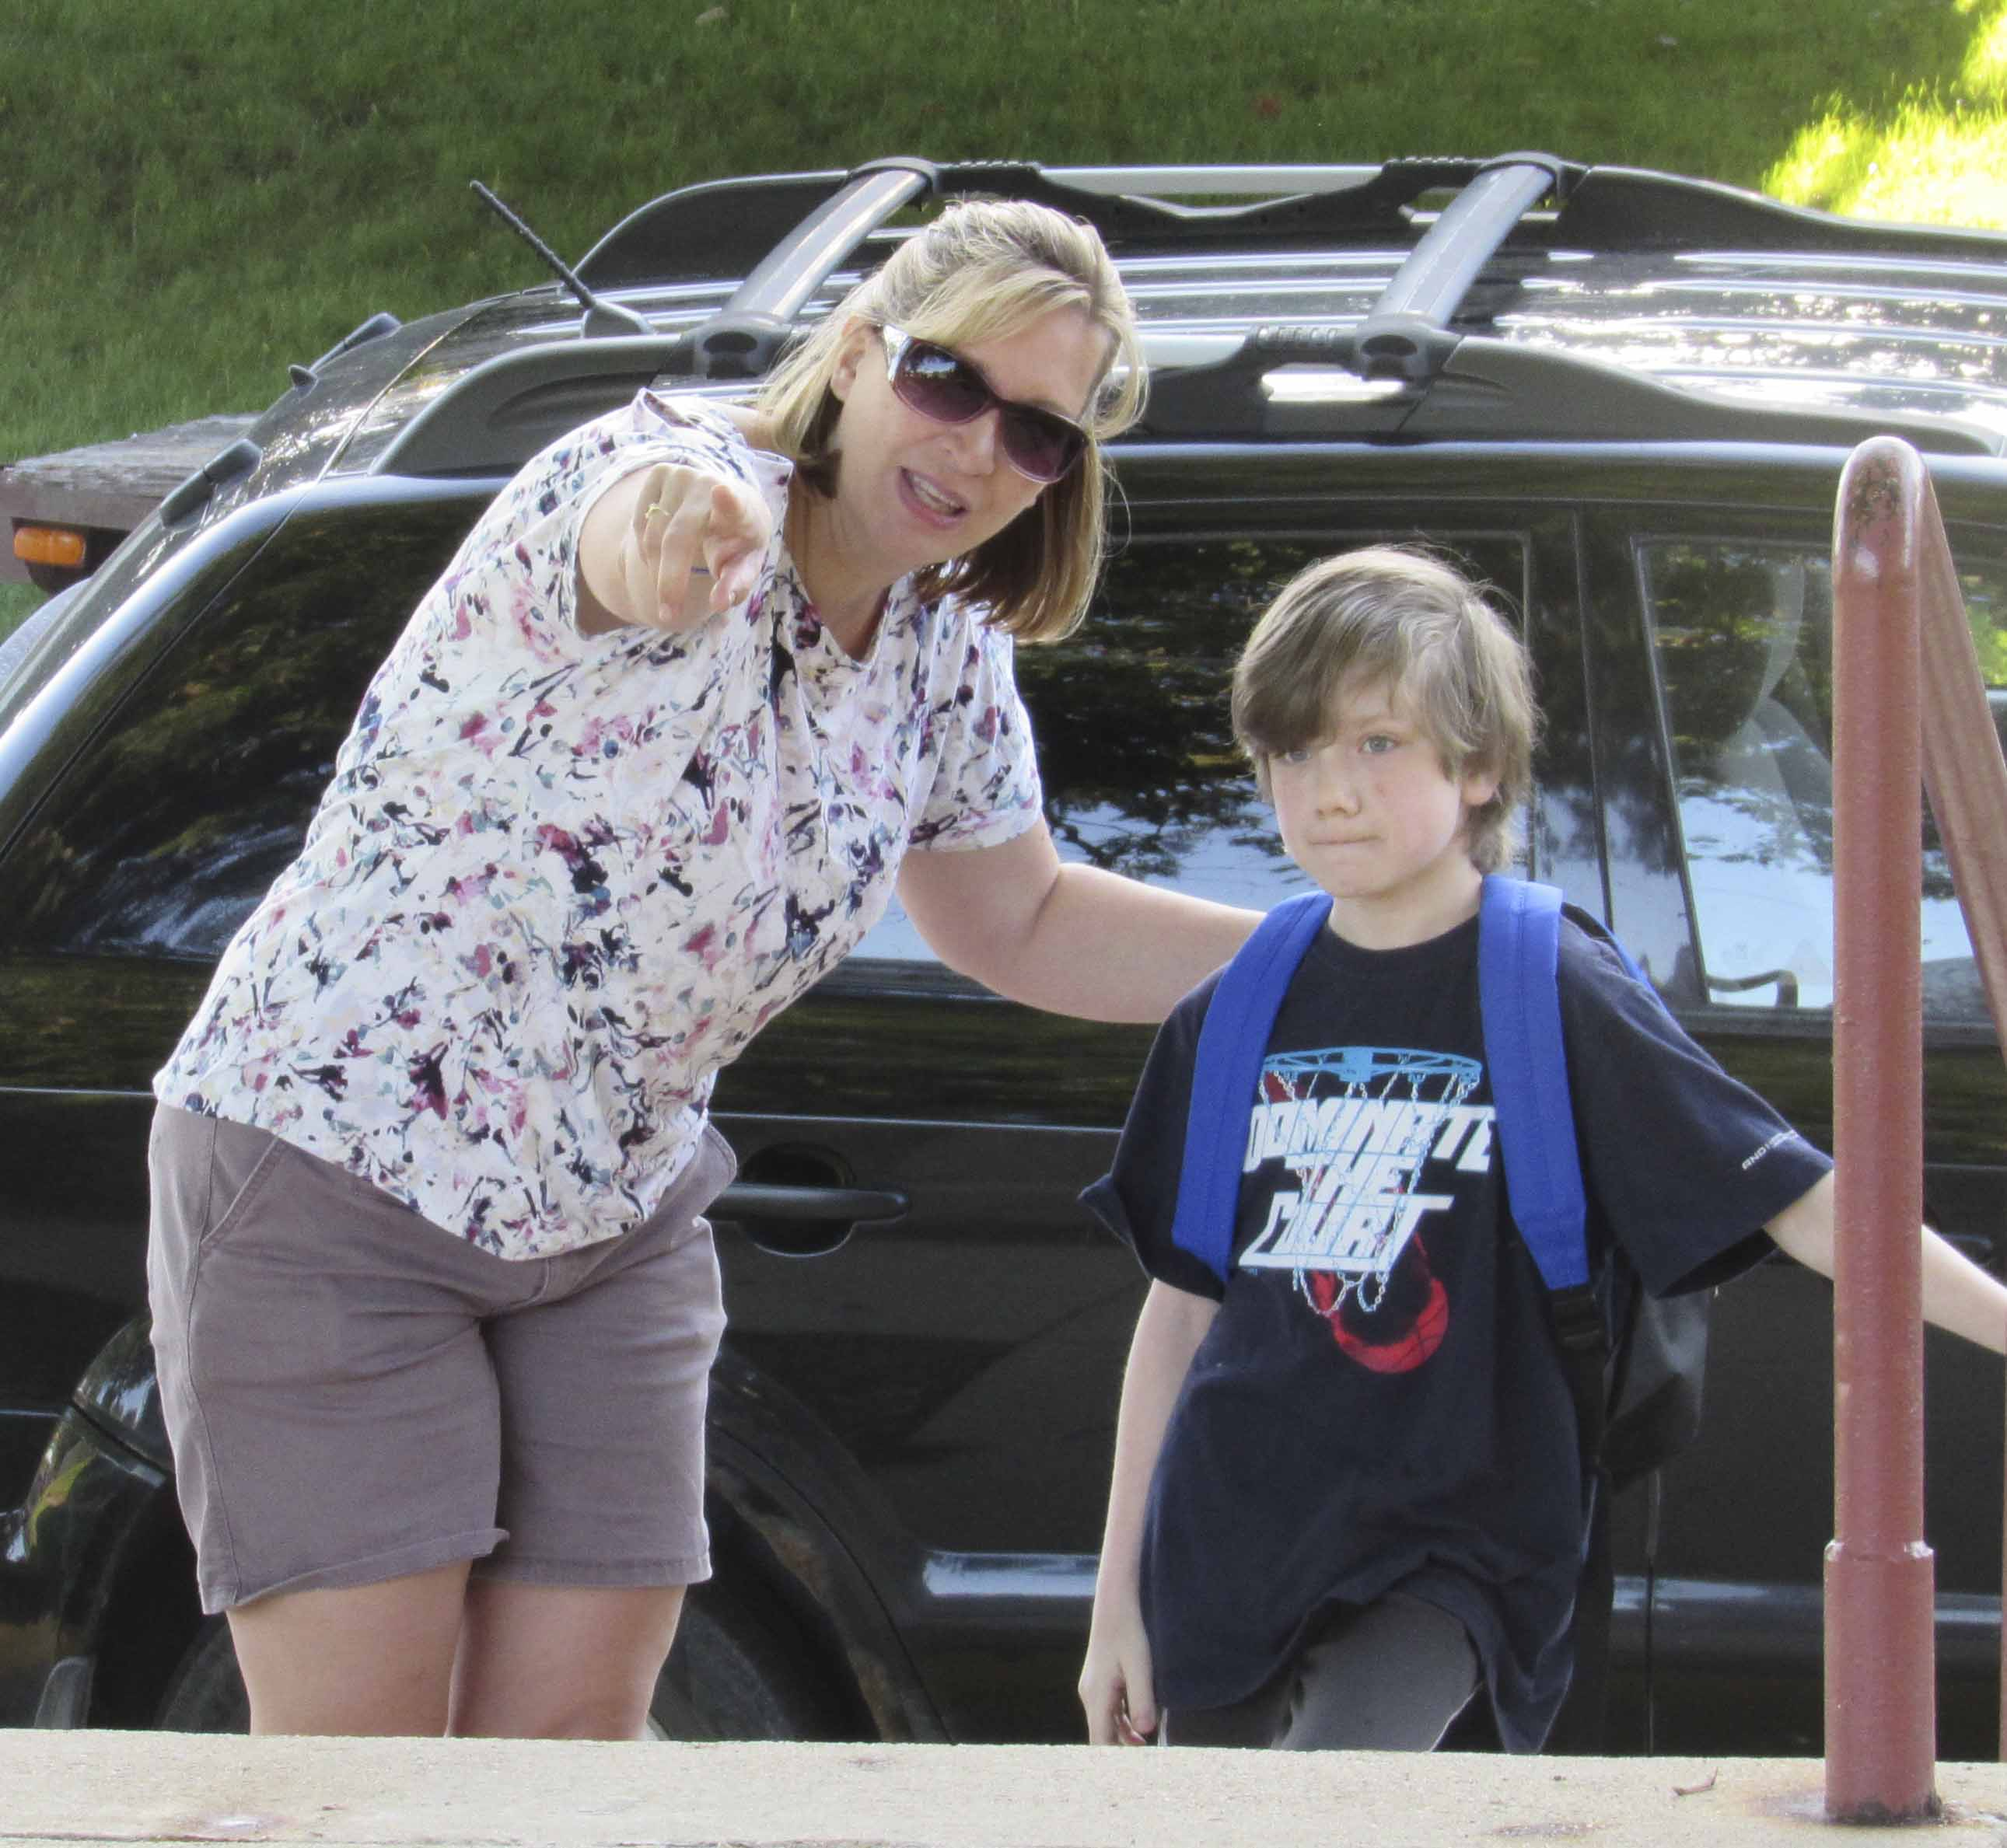 Carpenter Associate Traysa Orcutt directs new fourth grader Nickolas Bachelder to his line outside the school. (Photo by Kim Brooks)